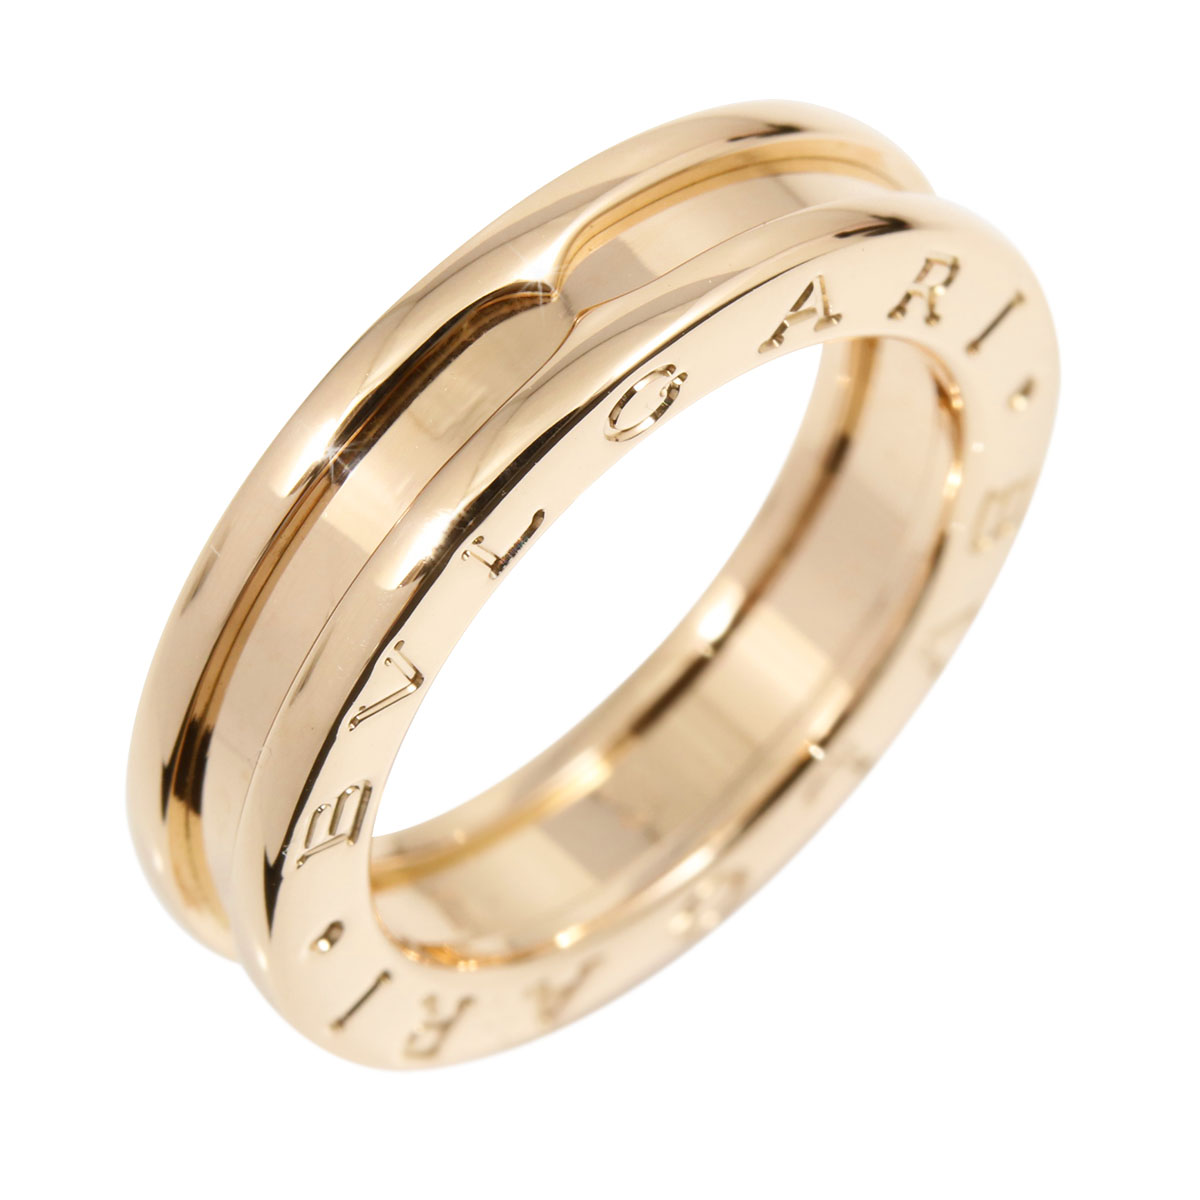 905343a8828 Details about Auth BVLGARI 18K Rose Gold B-Zero 1 XS Band Ring US5.5 EU50  A1653